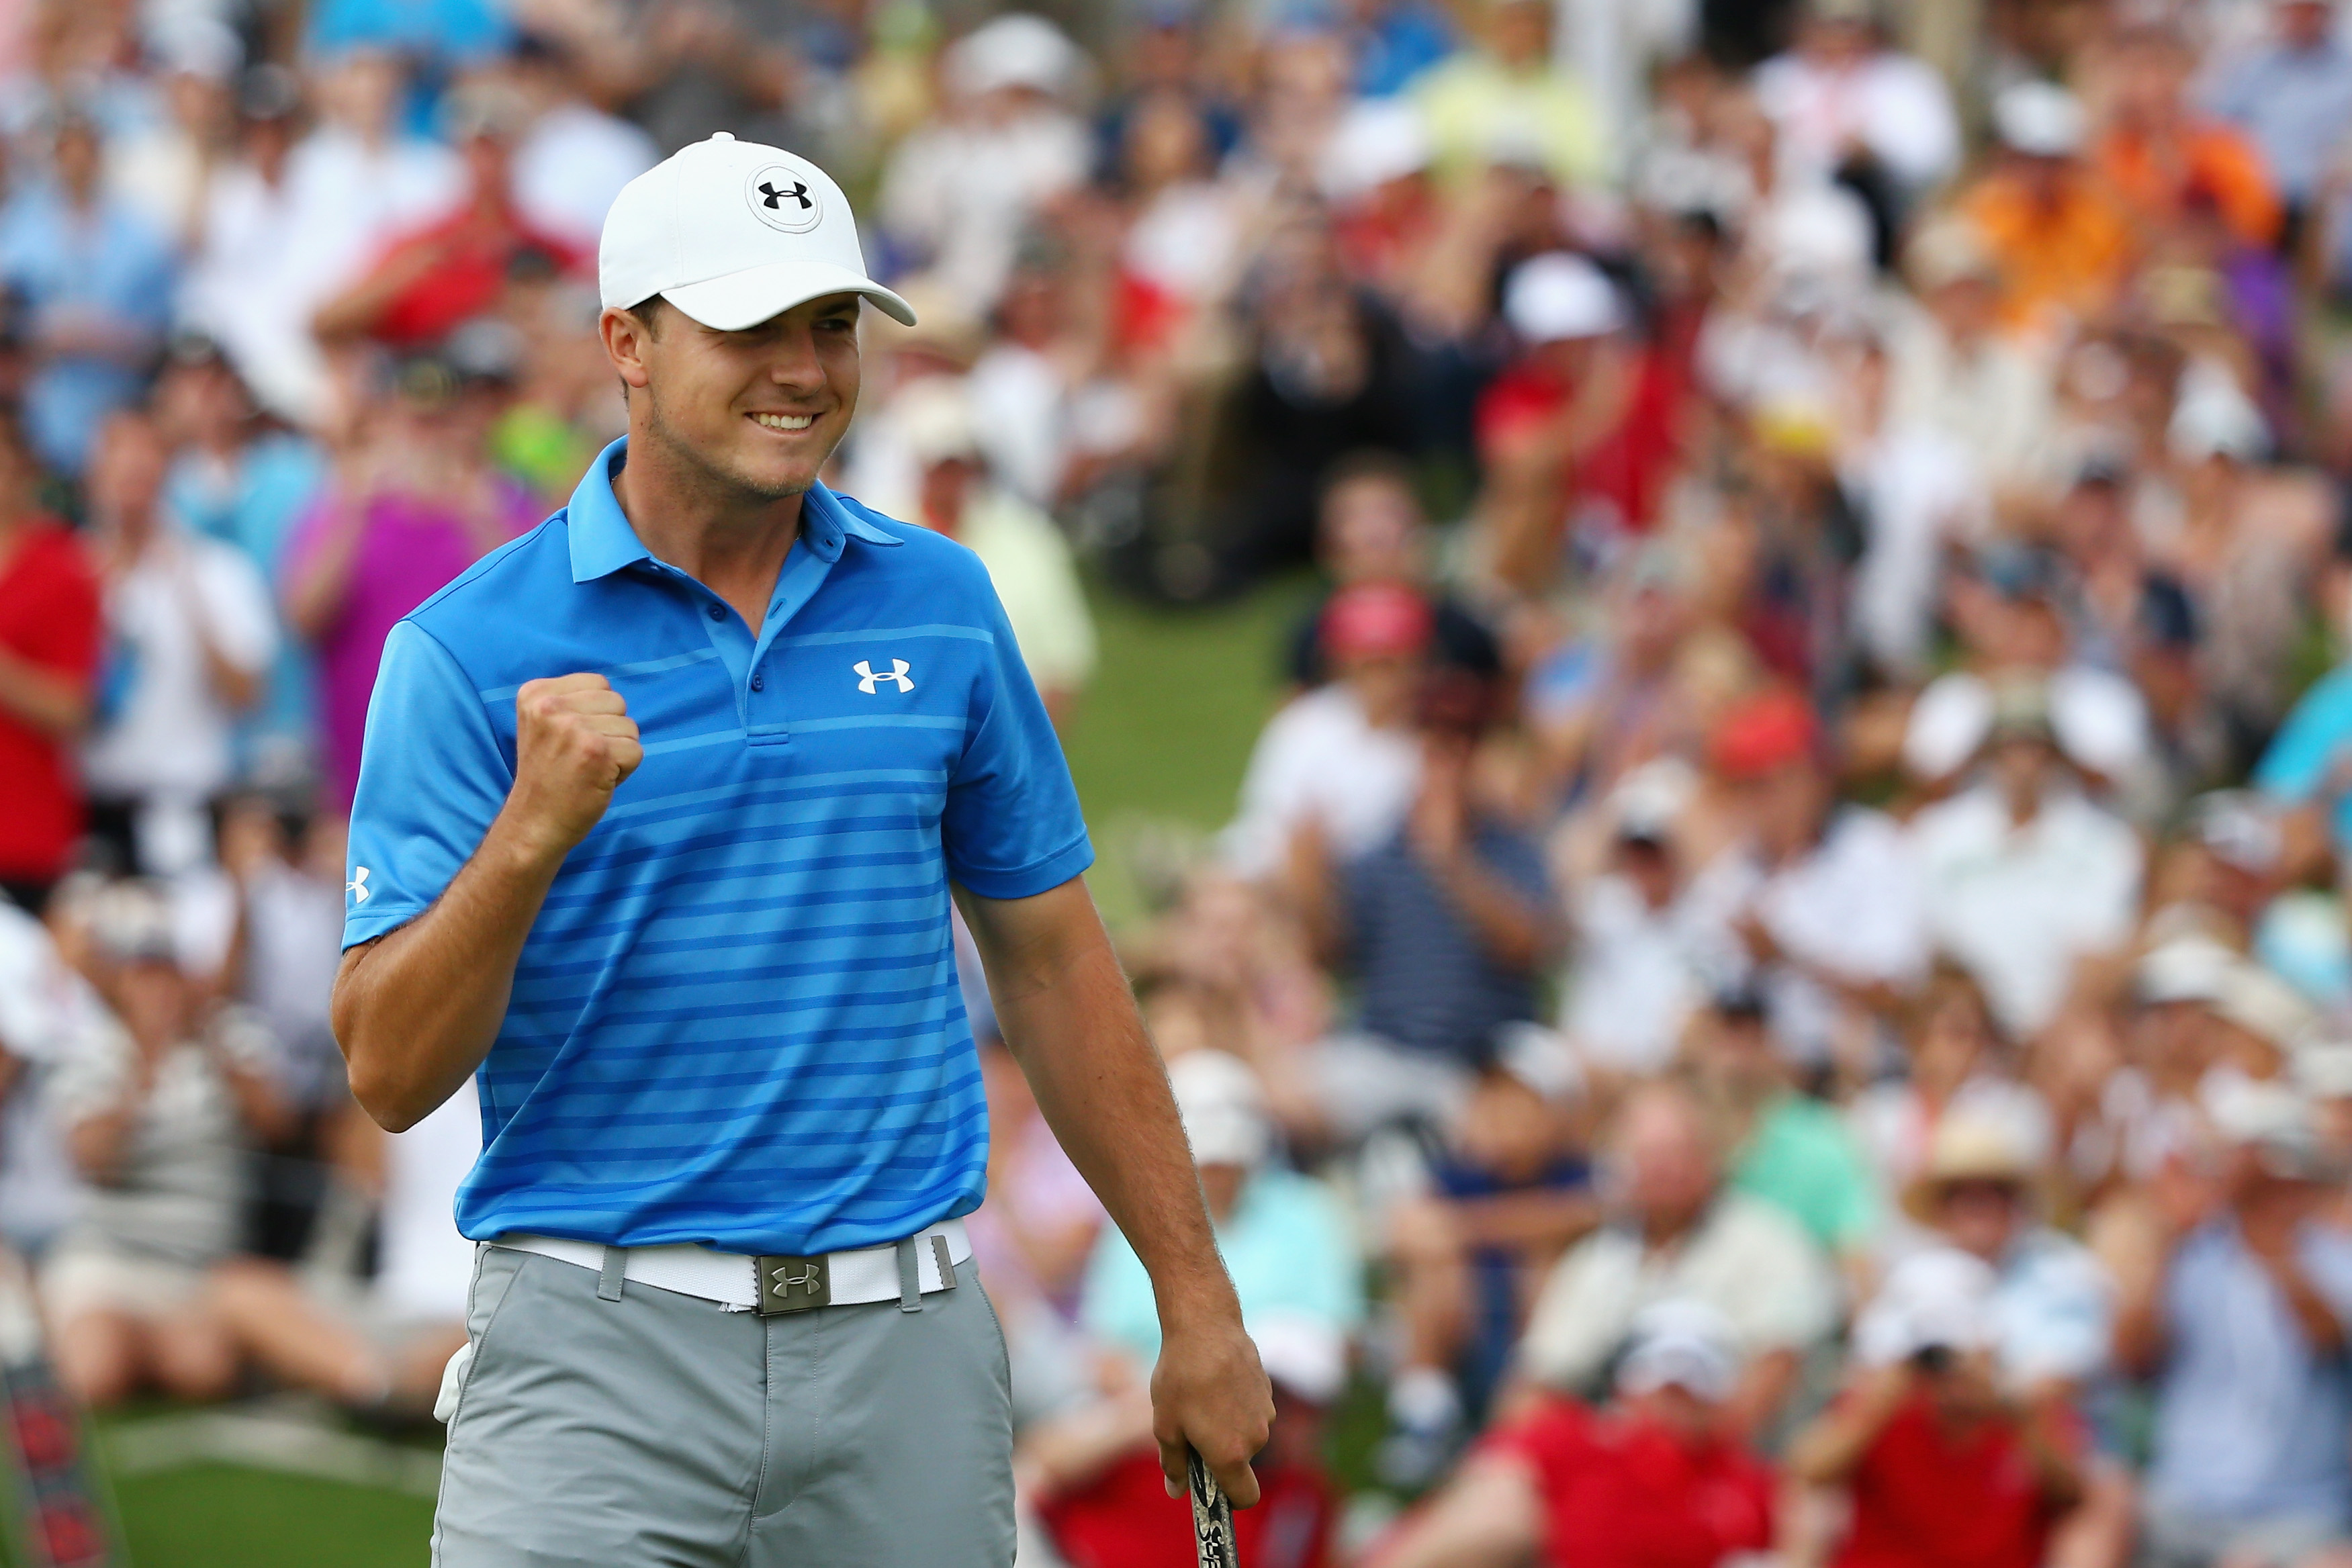 Jordan Spieth celebrates on the 18th green following his Australian Open victory.